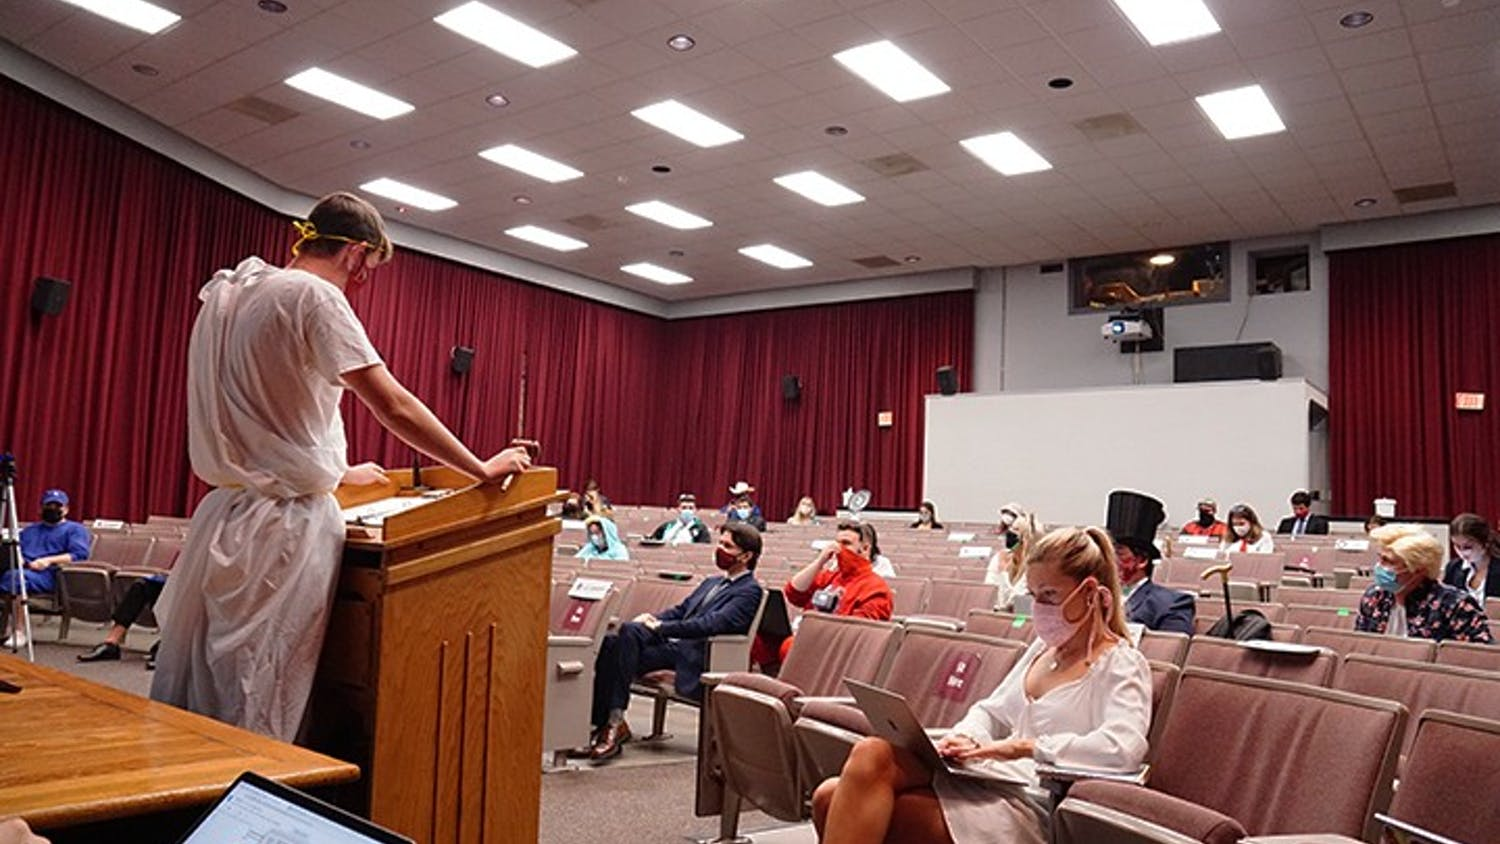 Speaker of the student senate JD Jacobus faces the senate in a toga. Students were encouraged to wear Halloween costumes to the meeting.